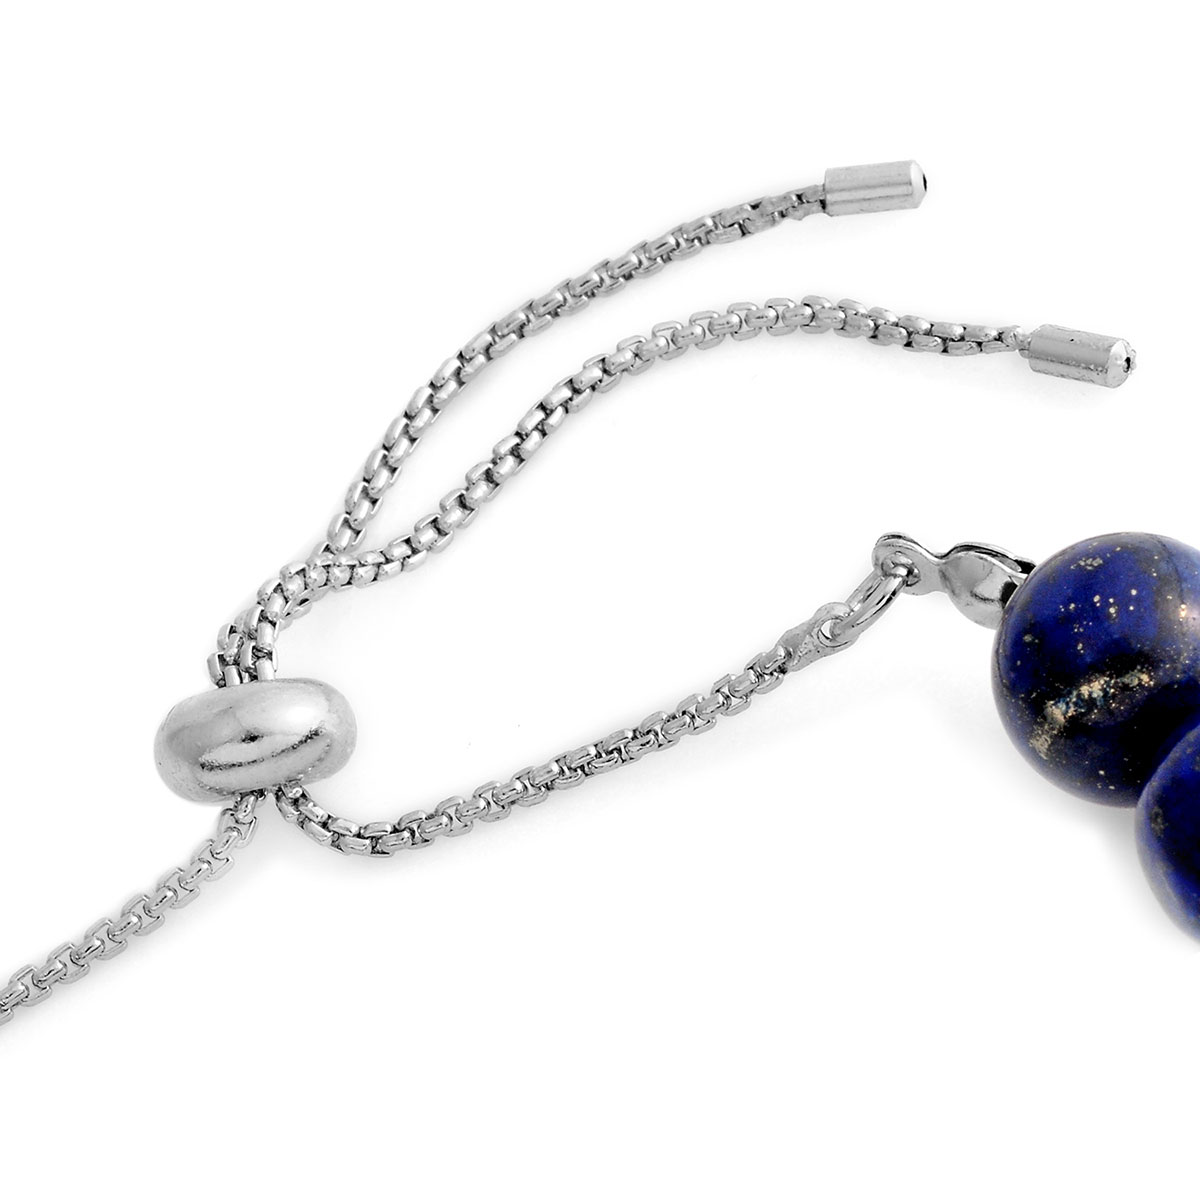 Lapis Lazuli, Multi Gemstone Bolo Charm Bracelet in Silvertone (Adjustable) 115.00 ctw